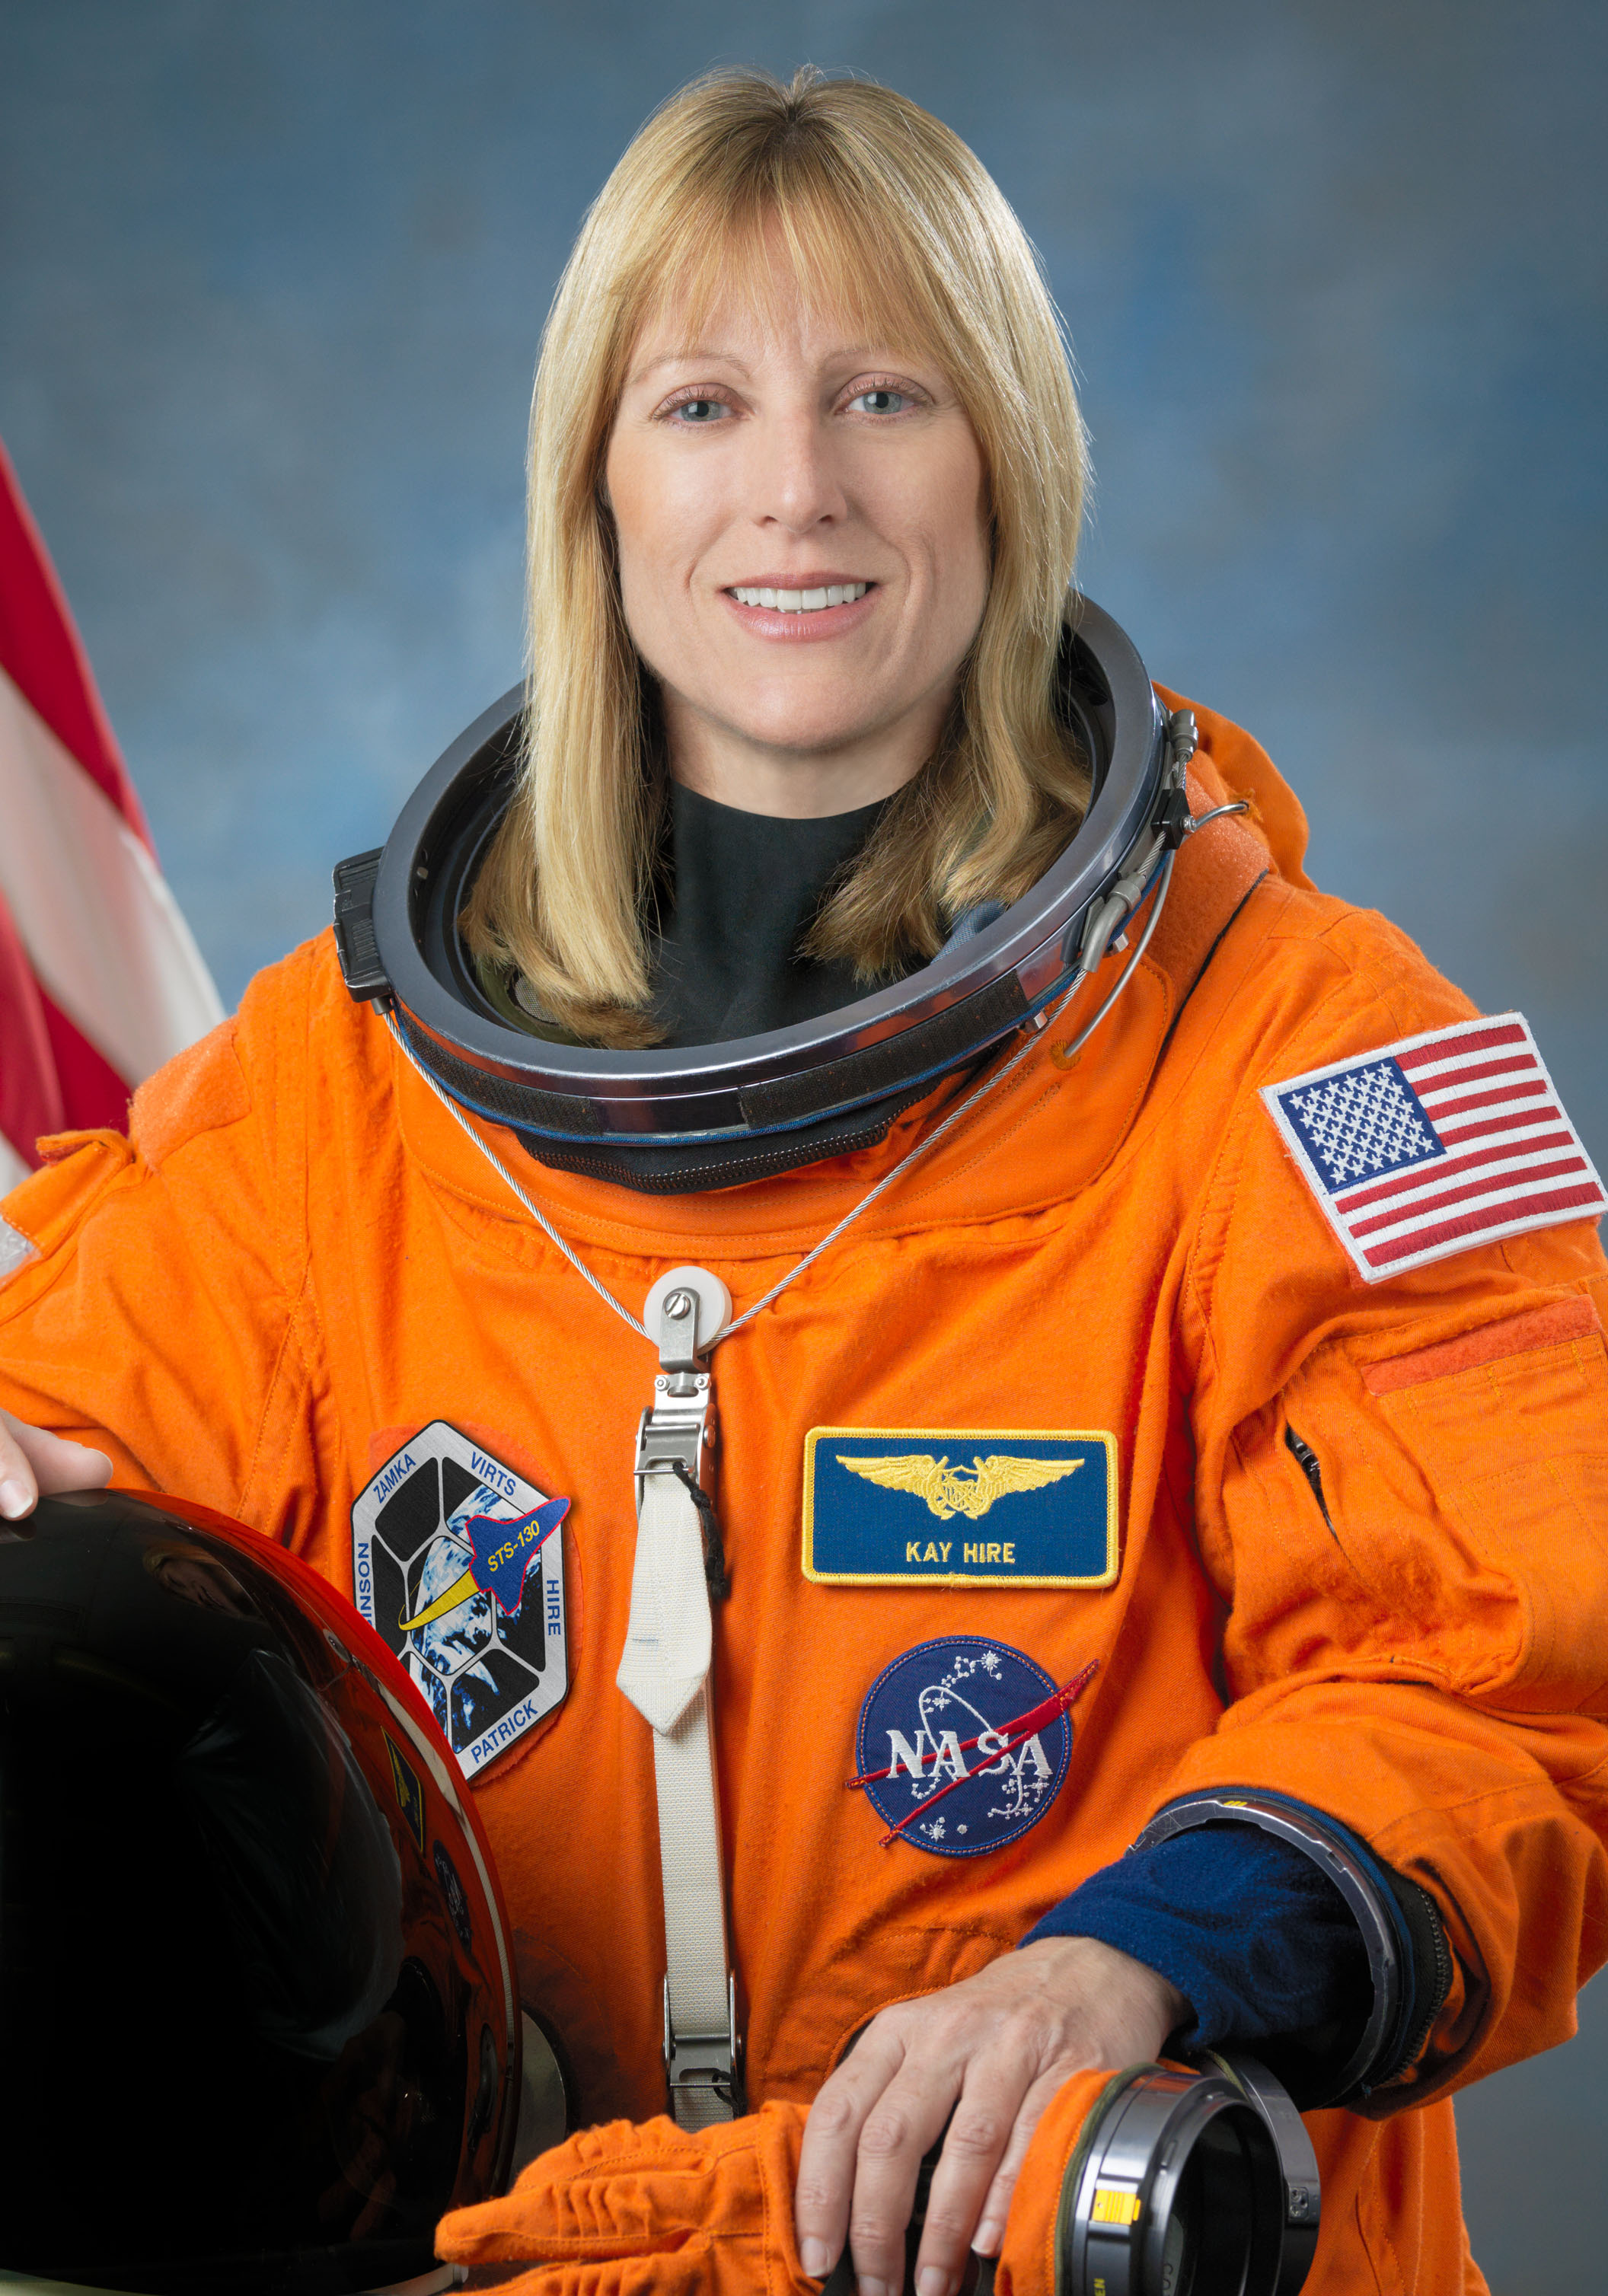 Image result for Kathryn P. Hire nasa